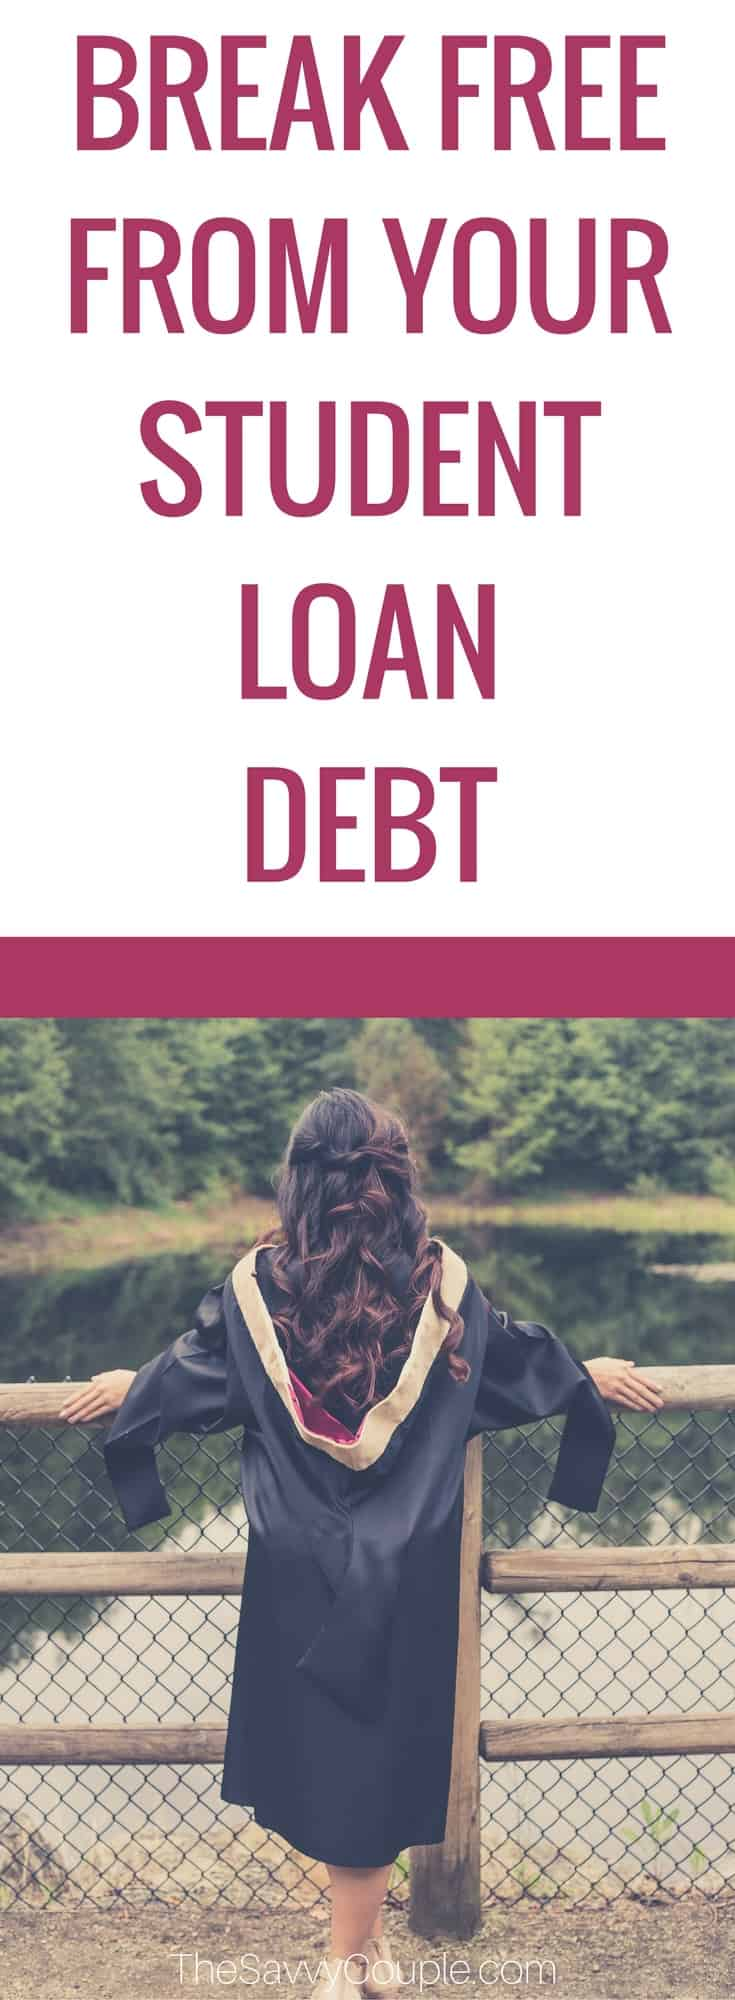 Struggling to pay your student loans? You're not alone. Celebrate the milestones in paying off your student loan debt. Every little bit counts! Take control over your student loan payments. Student loan debt does not need to consume your budget. Student Loan Debt | Student Loans | Refinance Student Loans | Loan Forgiveness |